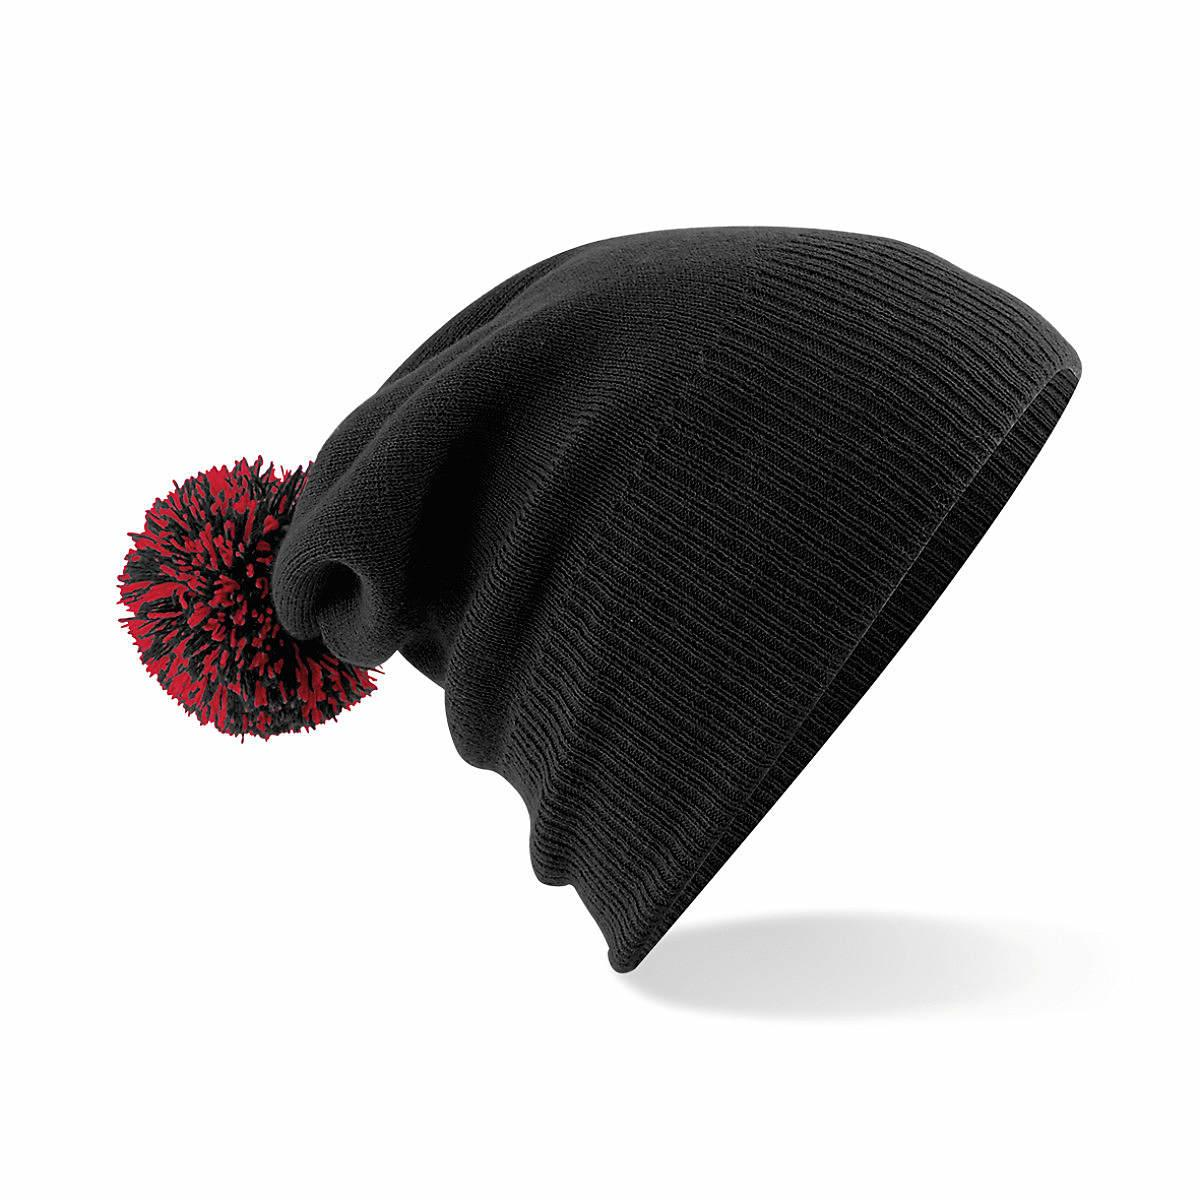 Beechfield Snowstar Beanie Hat in Black / Classic Red (Product Code: B450)